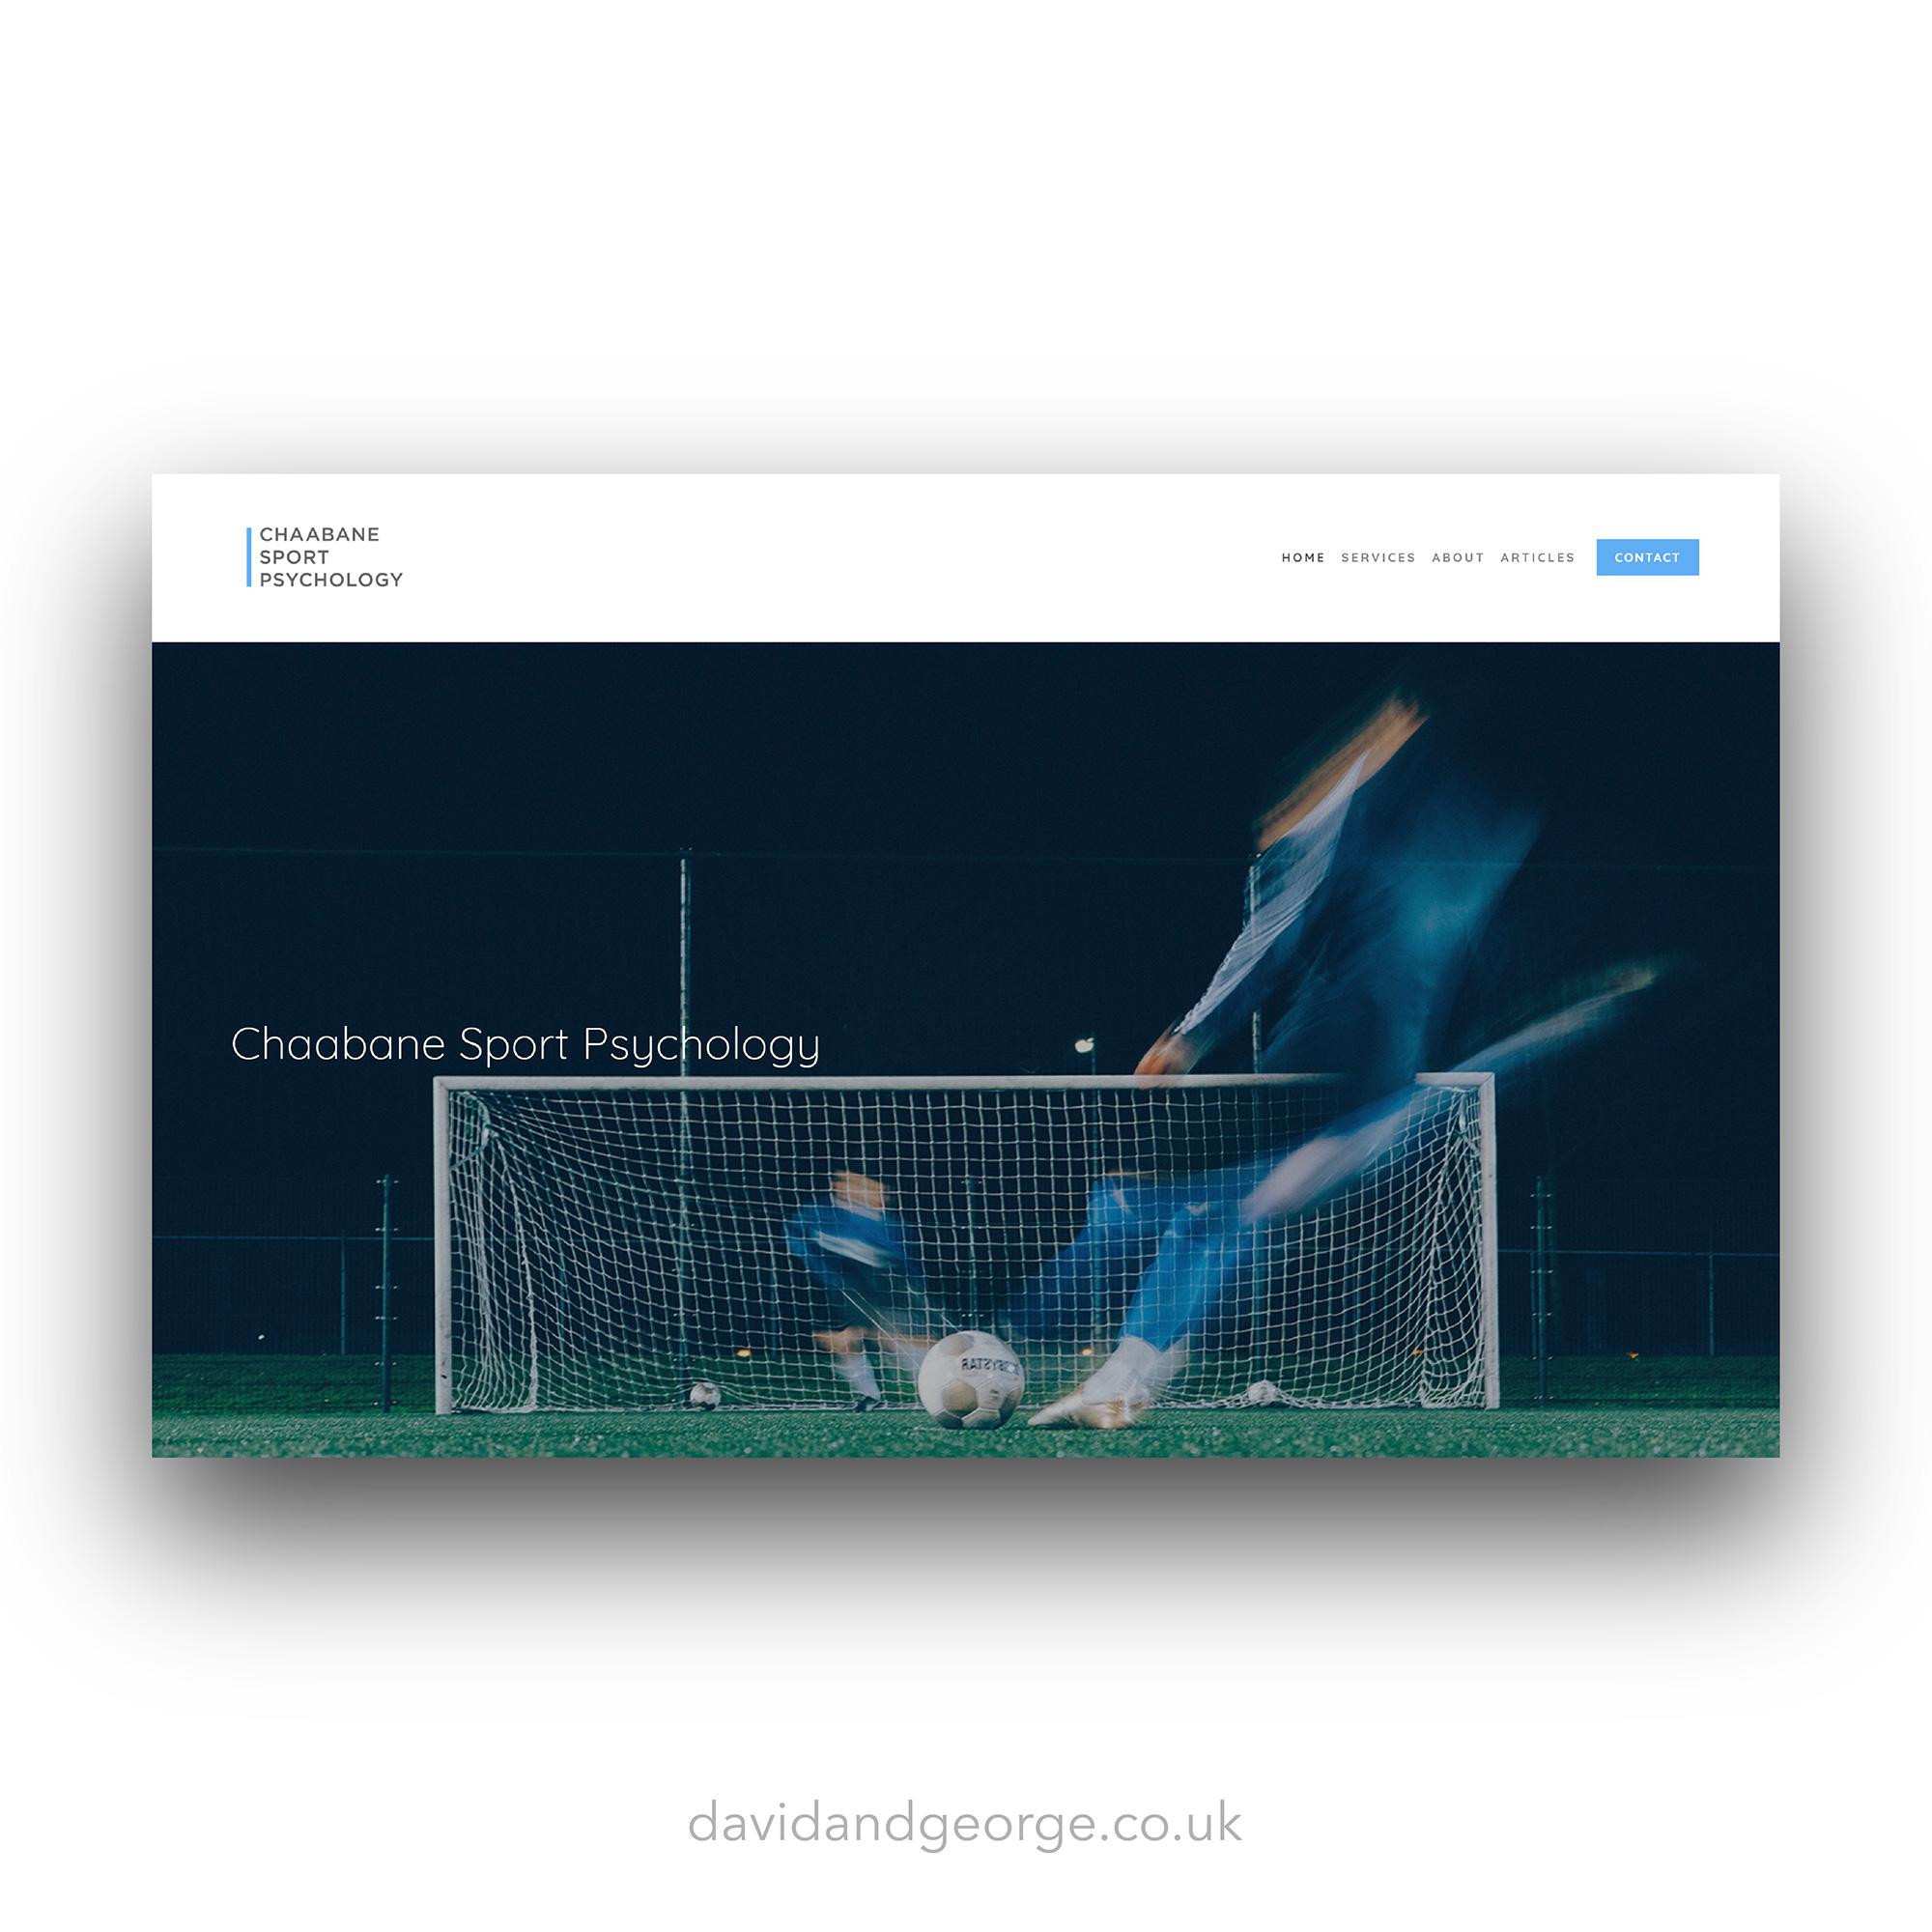 chaabane-sport-psychology-health-and-fitness-website-squarespace-designer-uk-06.jpg